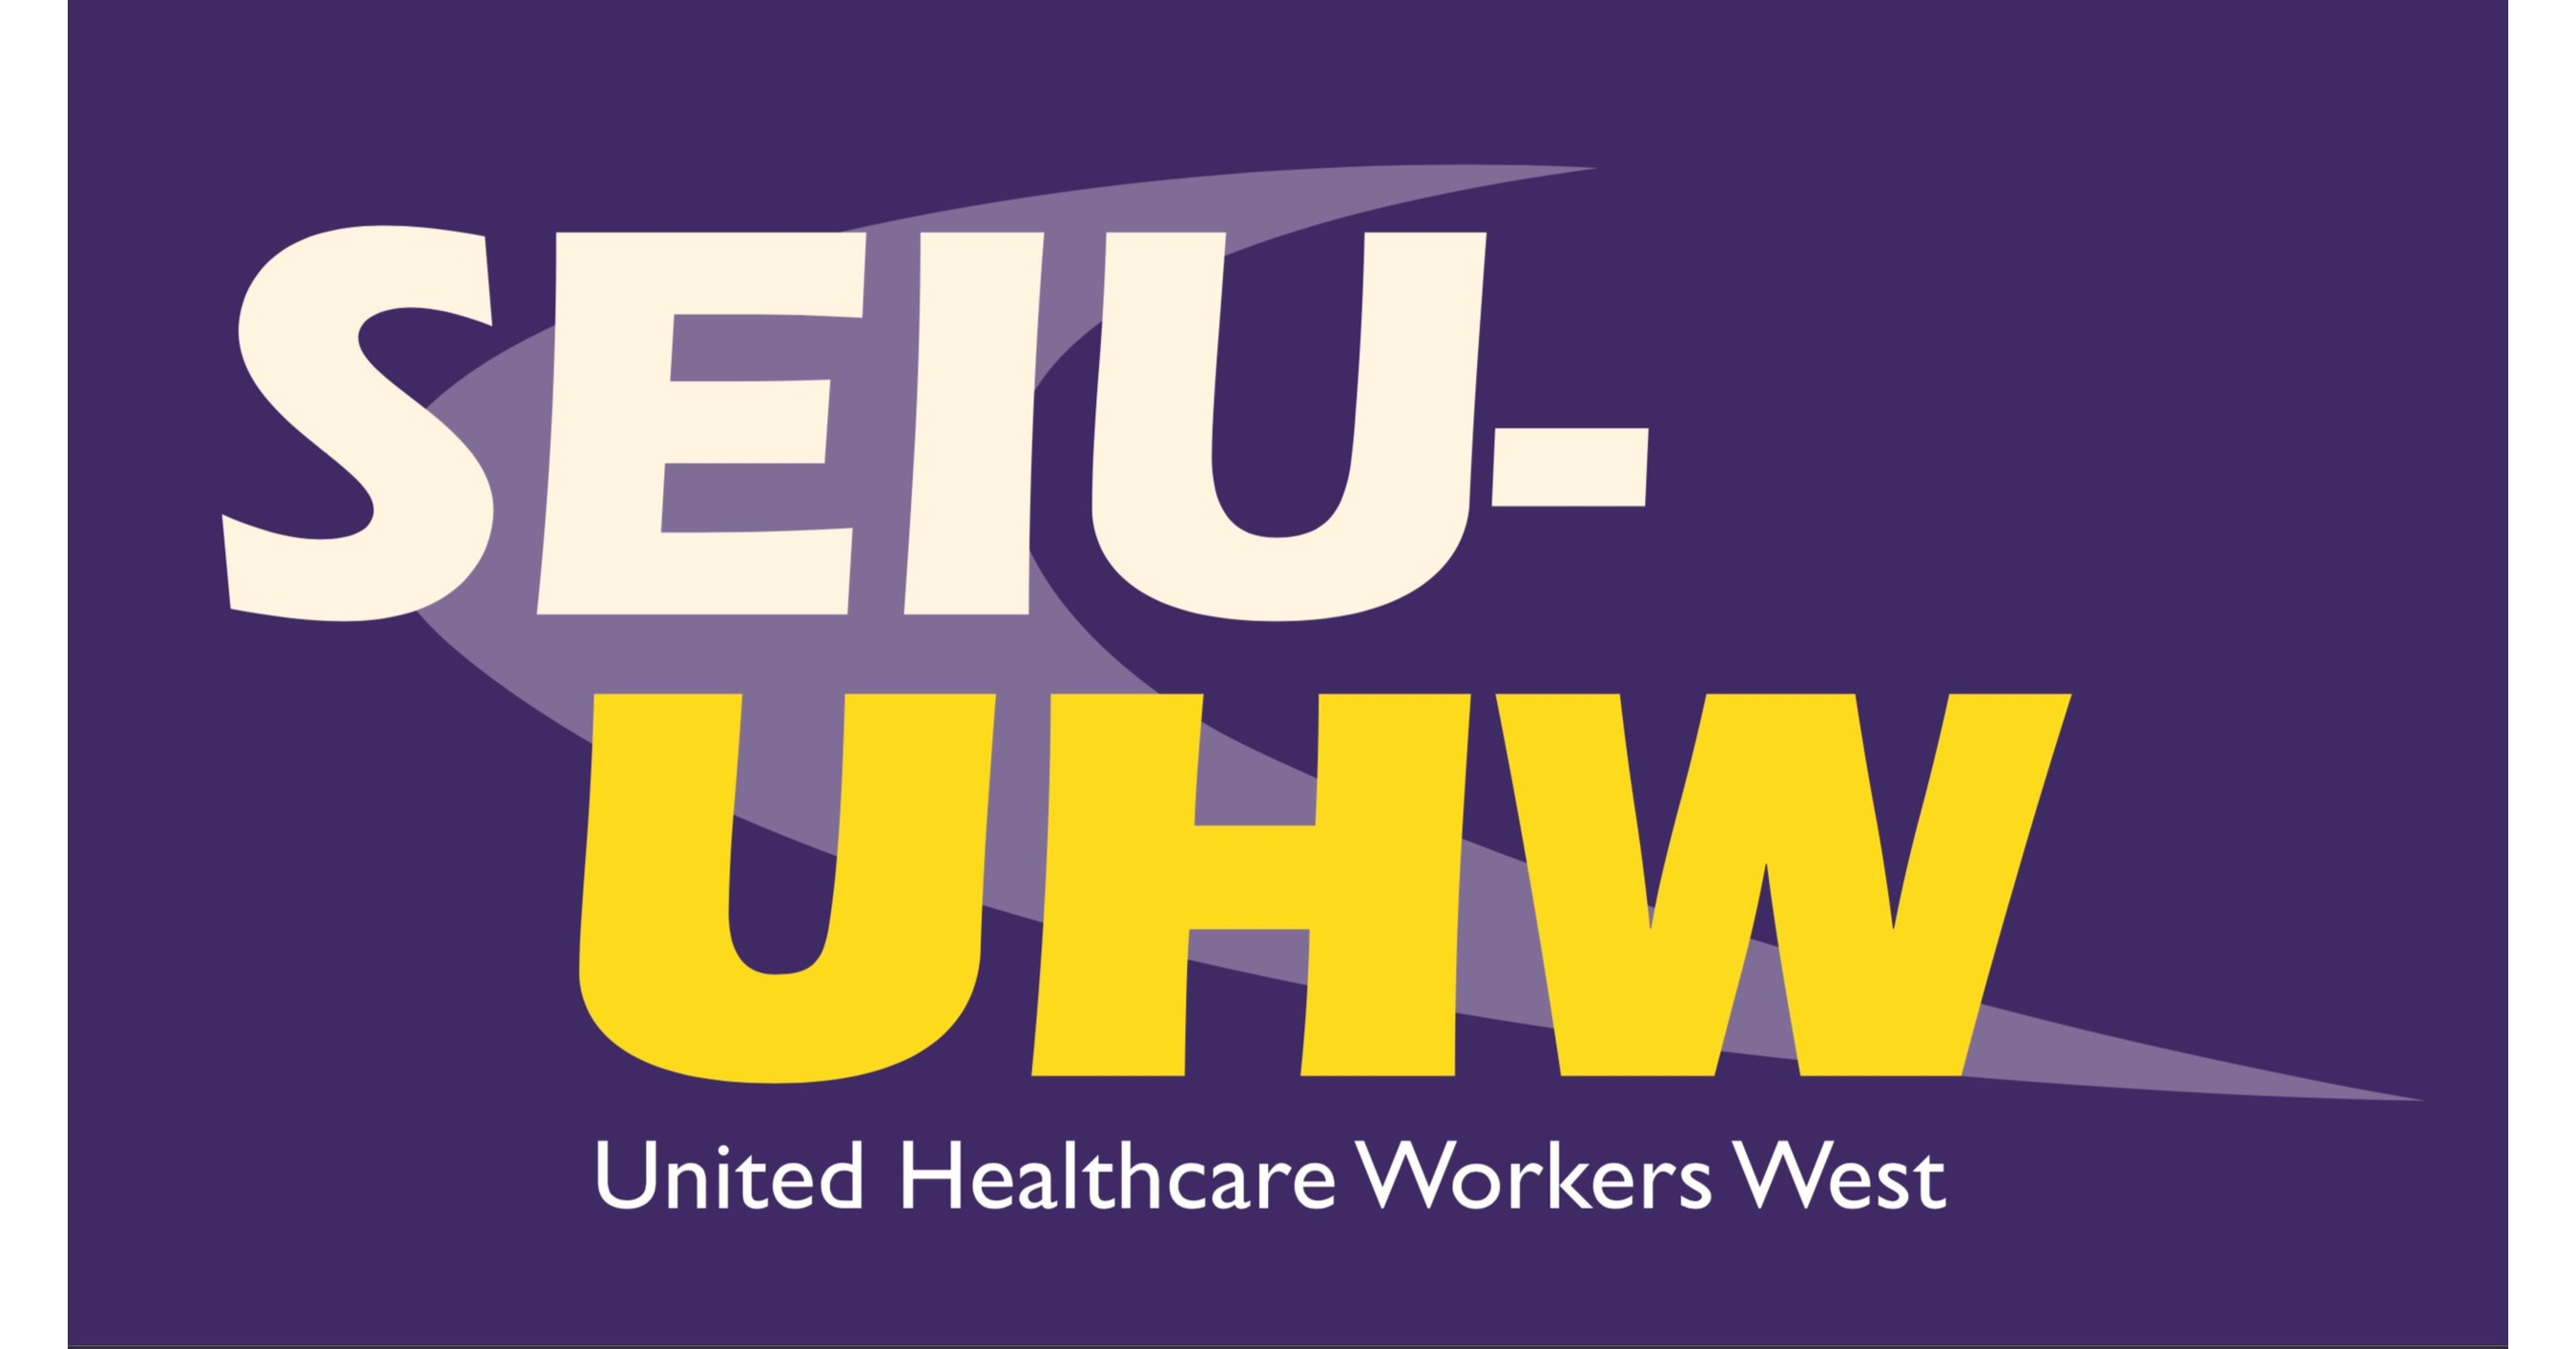 WGU, SEIU-UHW, and Healthcare Employers Partner to Reinvent